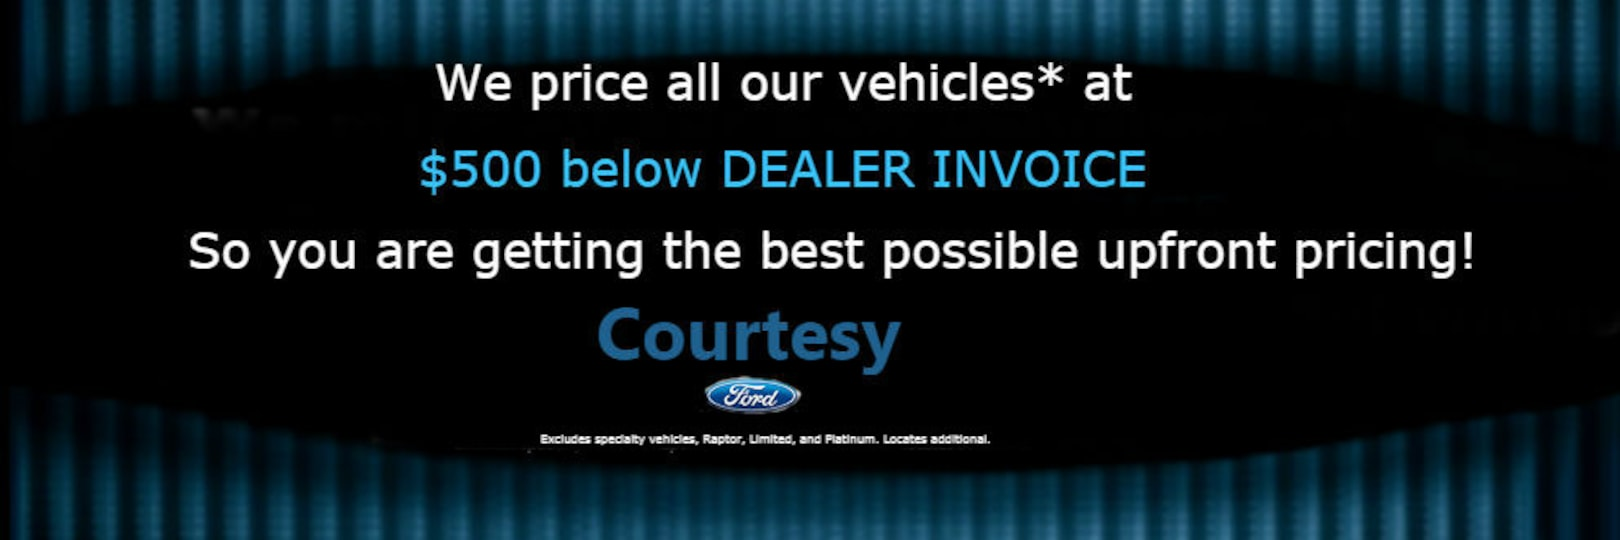 Courtesy Ford Of Brooklyn New Used Ford Dealership Brooklyn - Ford dealers in ct